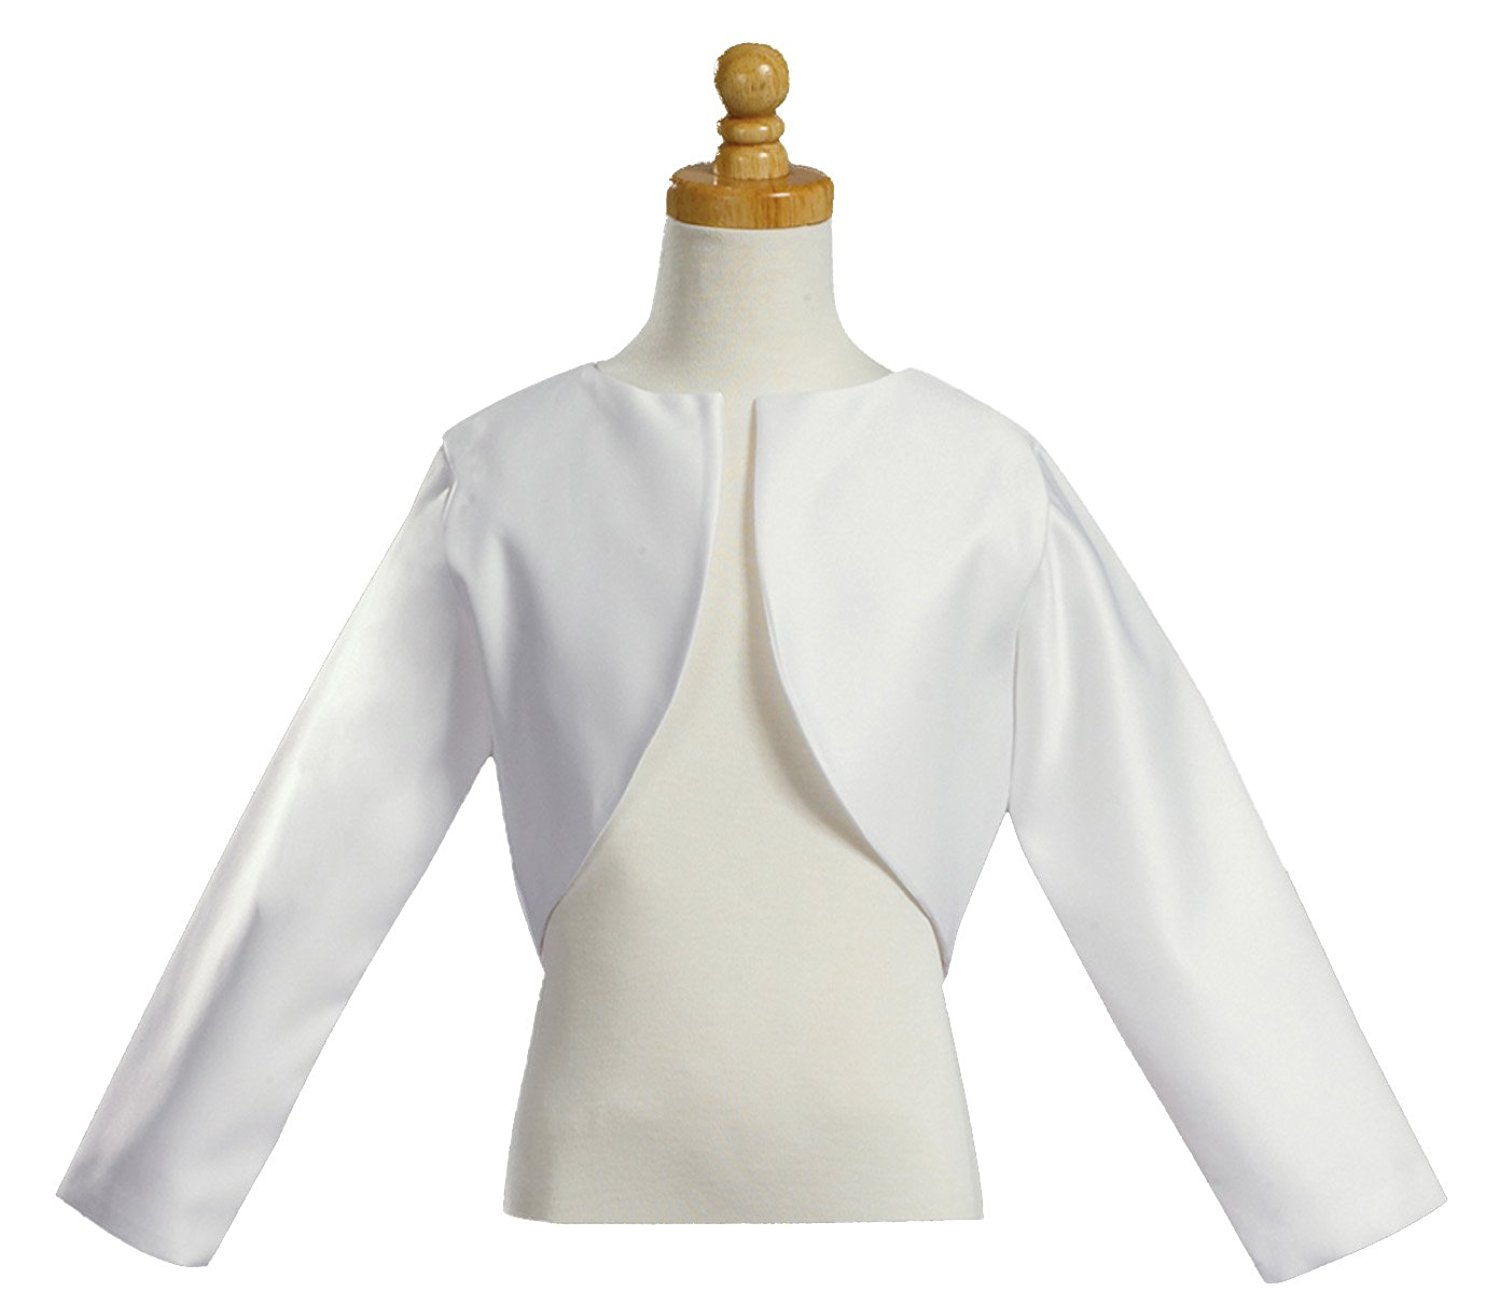 b09fb88a6c9e0 Get Quotations · Girl s White Long Sleeve Satin Bolero Jacket - Size 12